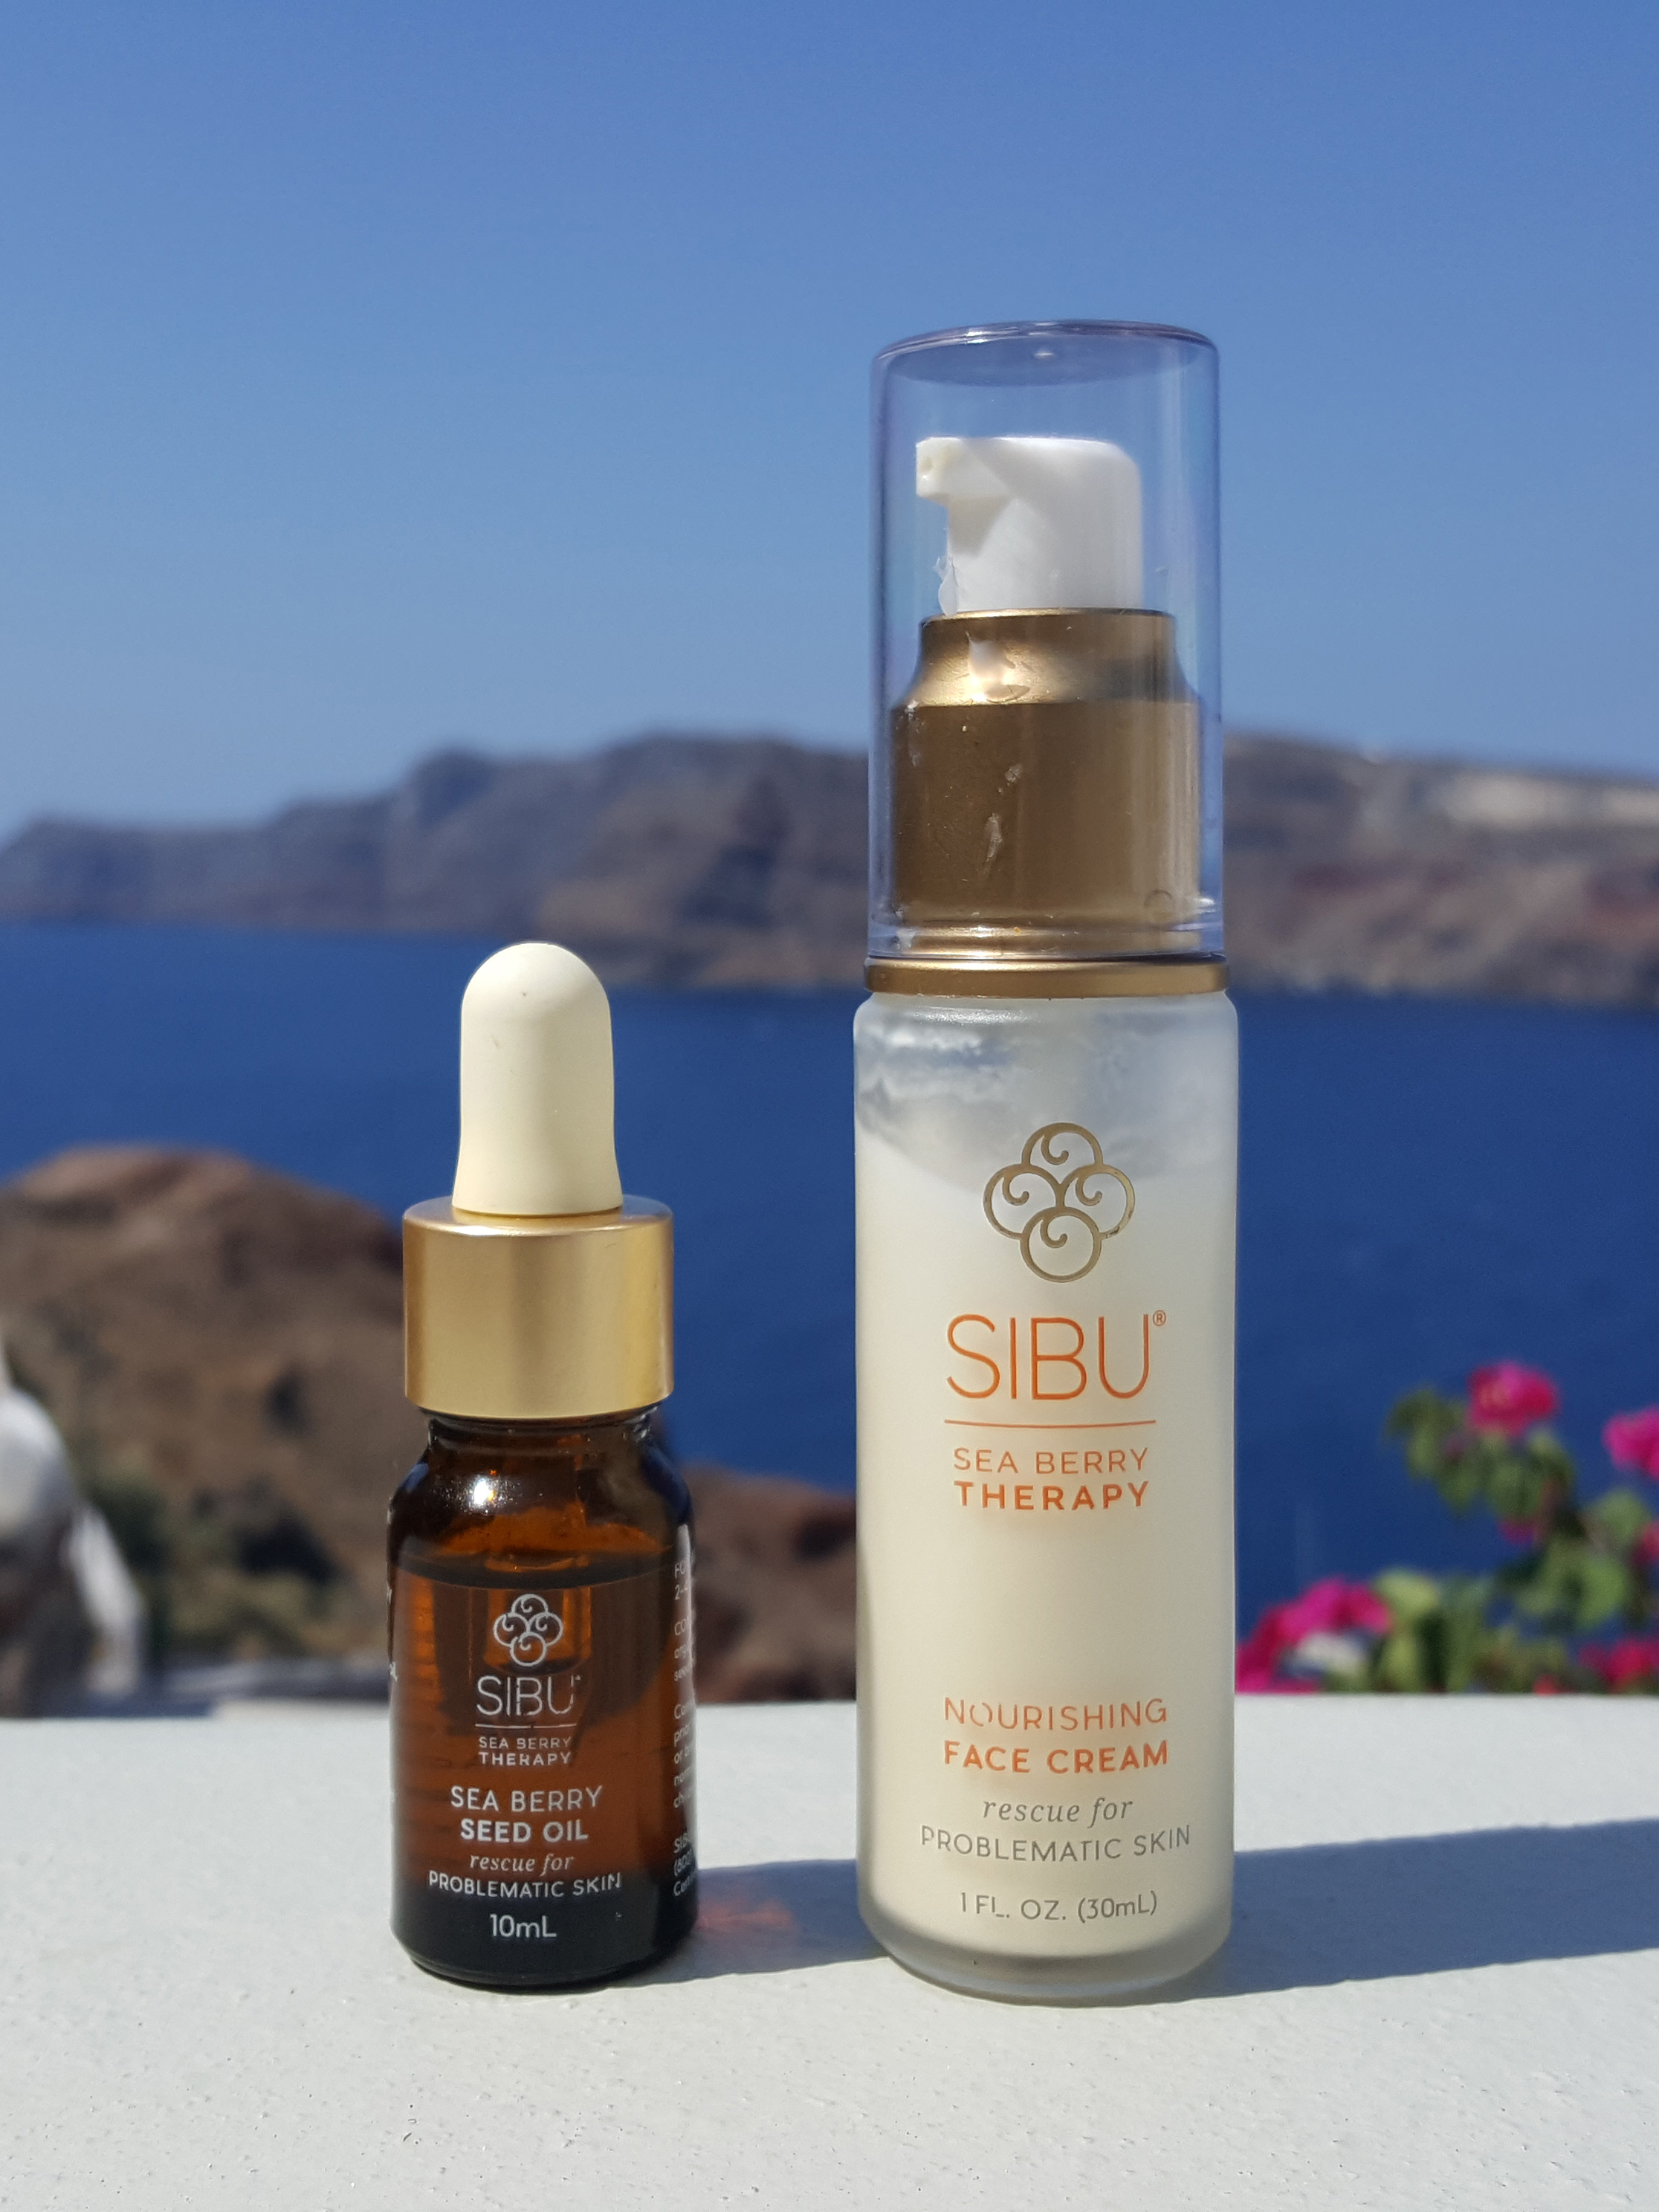 sibu_sea_berry_seed_oil_nourishing_face_cream_greece